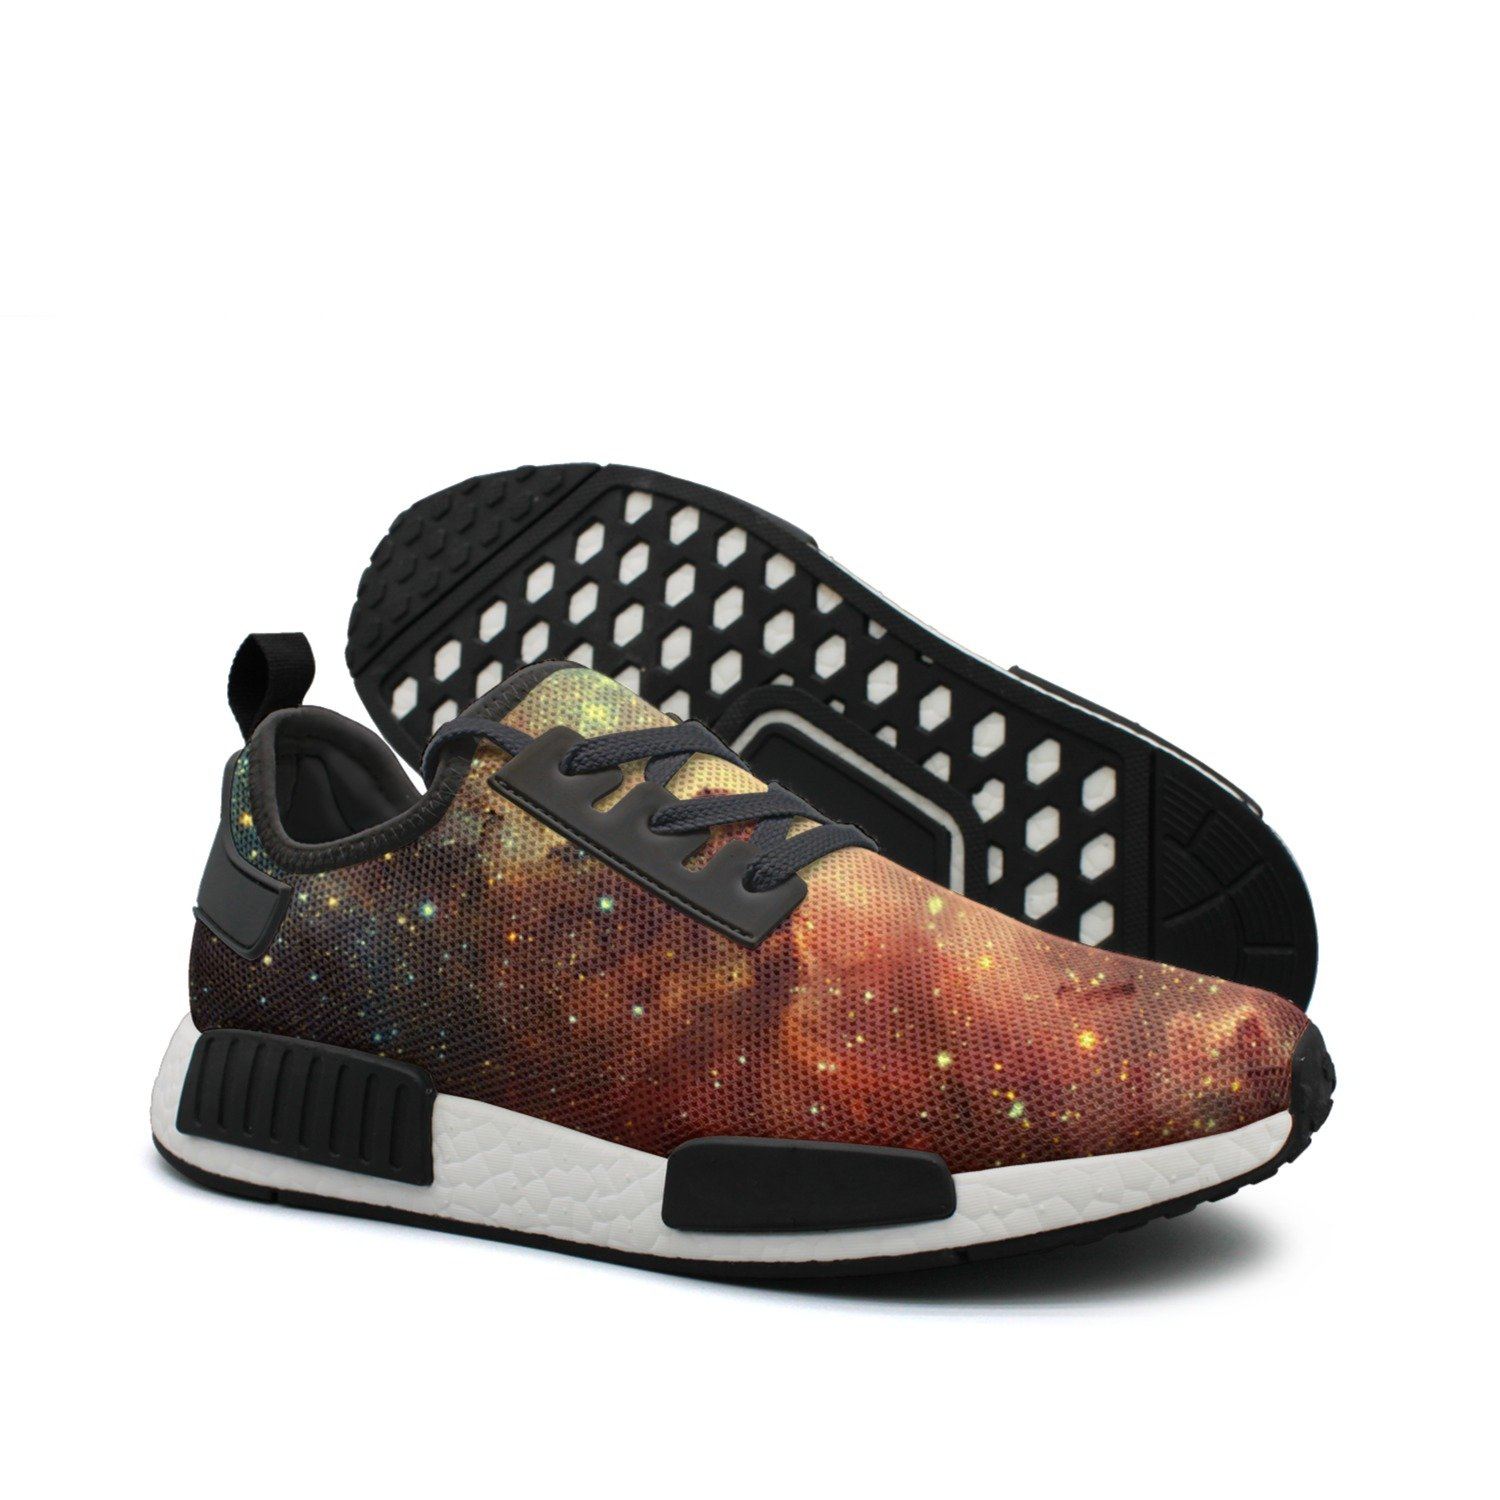 WhiteUnicorn Men's Beautiful Galaxy Stars Nebula Sneakers Casual Running Shoes Outdoor Trainers